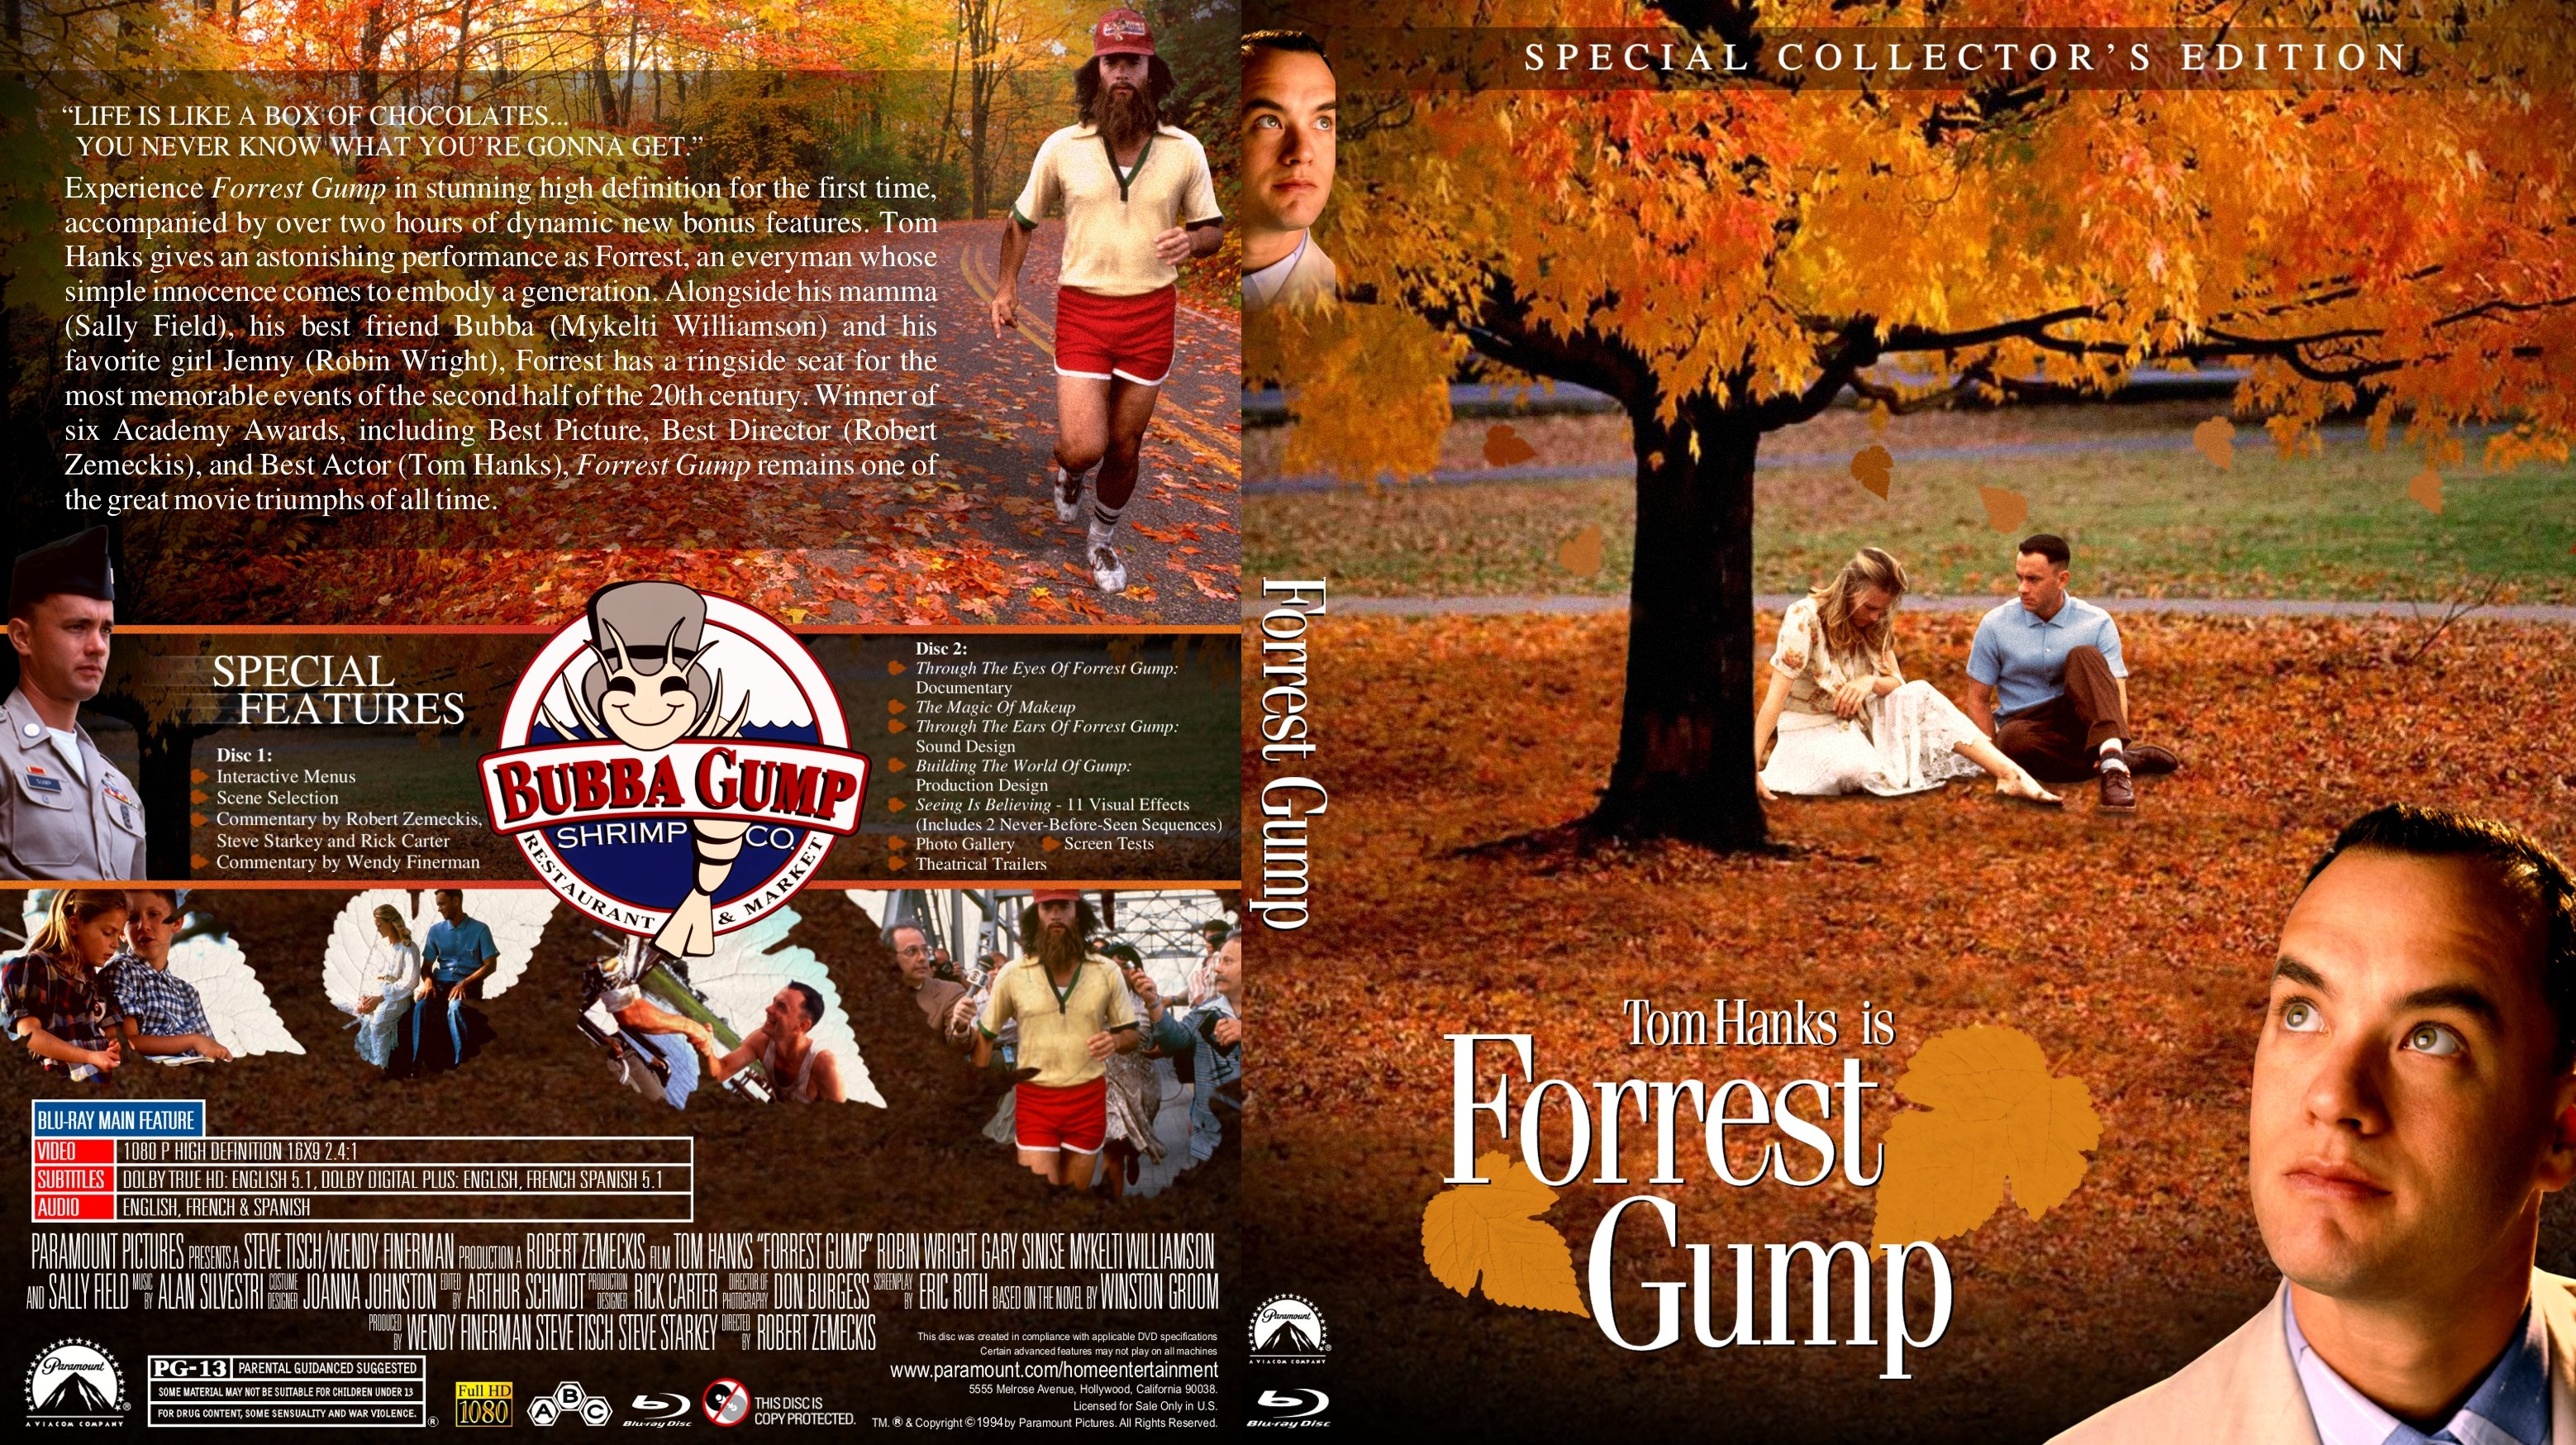 forrest gump one of the best american movies ever produced